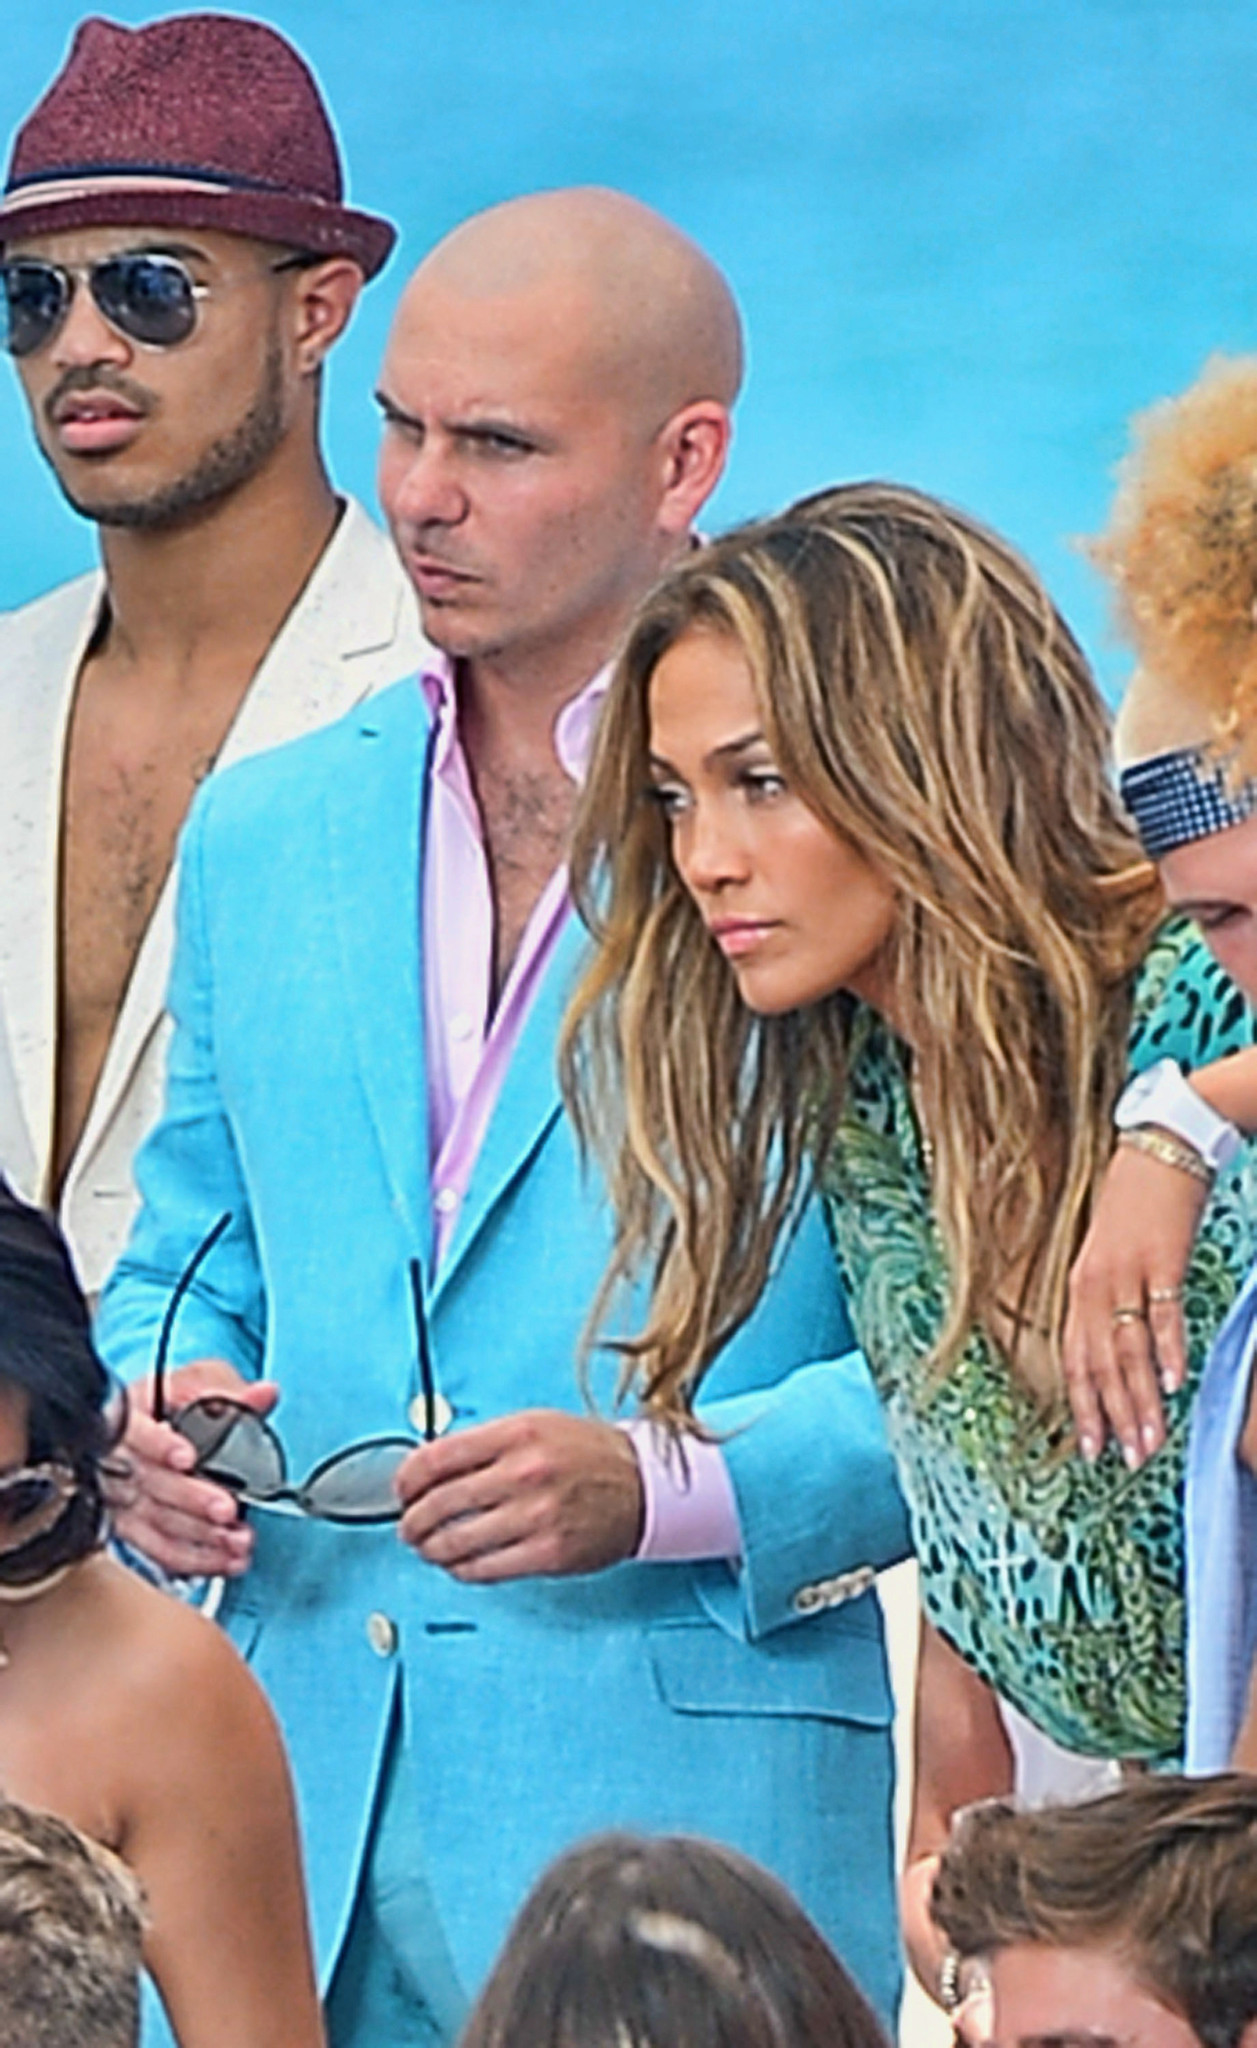 Celeb-spotting around South Florida - Jennifer Lopez And Pitbull Video Shoot In Florida